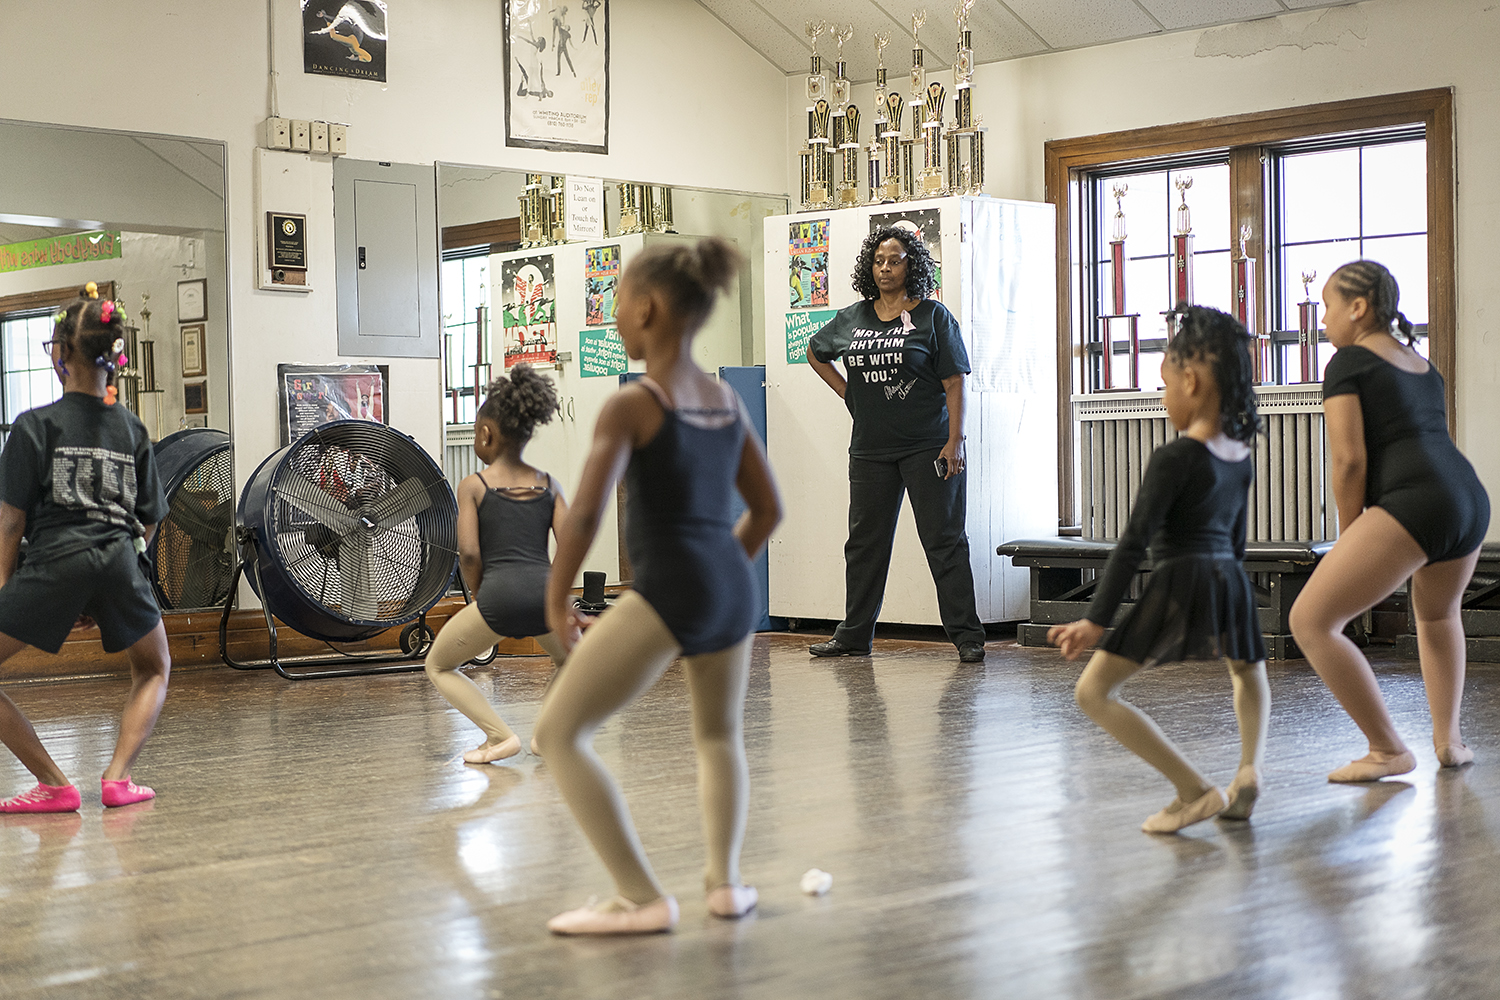 Flint, MI - Monday, October 16, 2017: In a small second-floor studio in the Berston Field House in Flint, Sheila Miller-Graham, center, from Flint, watches a young ballet class practice in front of the mirror. Miller-Graham, along with the other instructors at the Creative Expressions Dance Studio, work to instill a sense of confidence in the dancers to aid them in succeeding in not only dance, but anything else they decide to pursue.